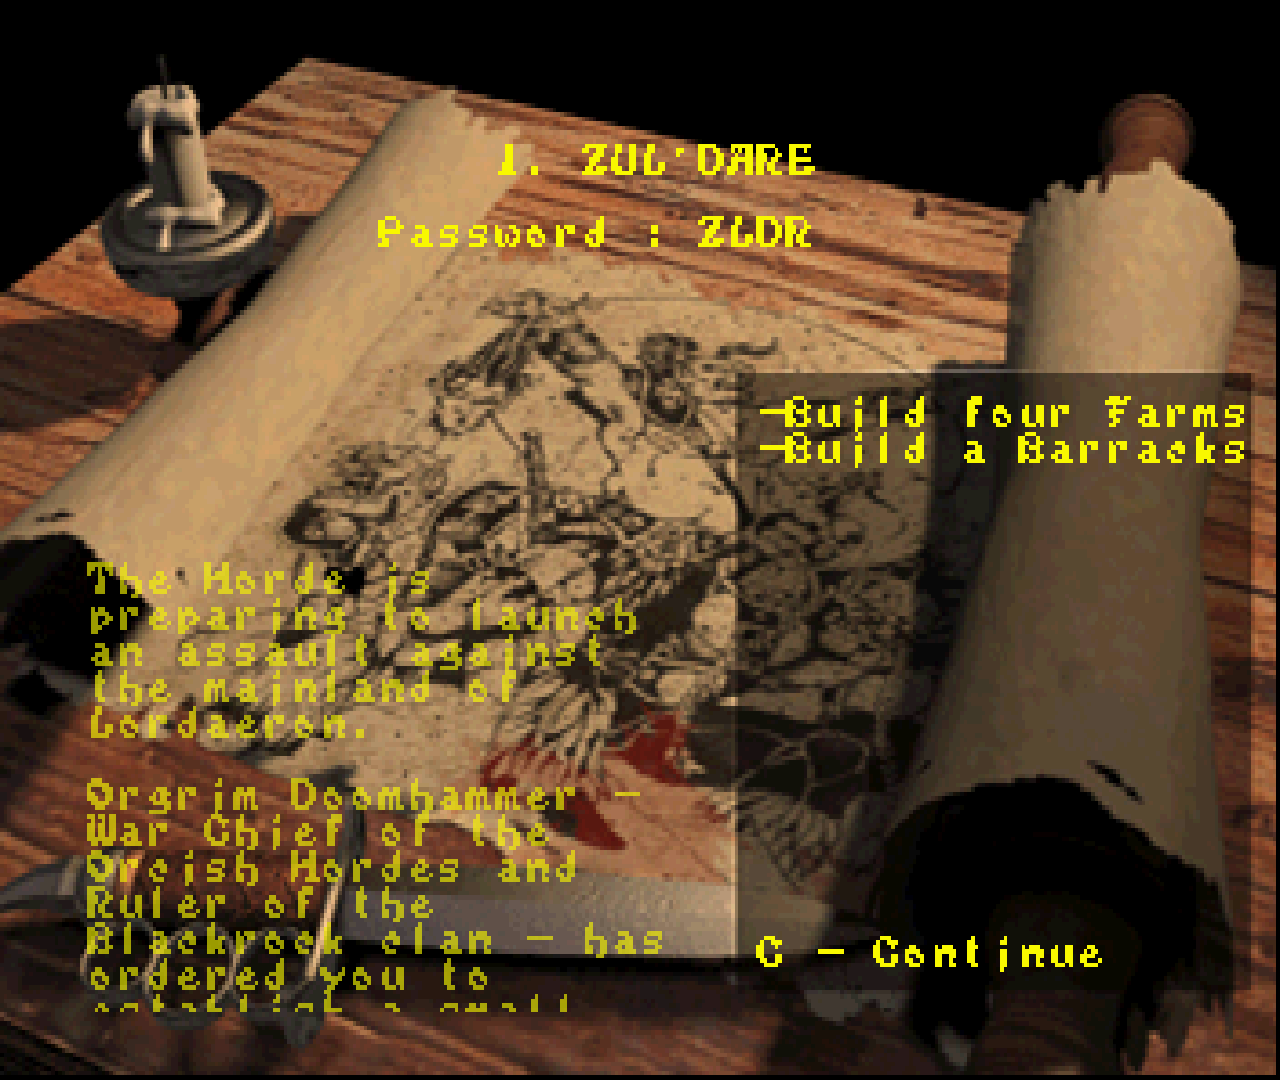 Figure 26 - Mission overview with level password fully voiced mission description